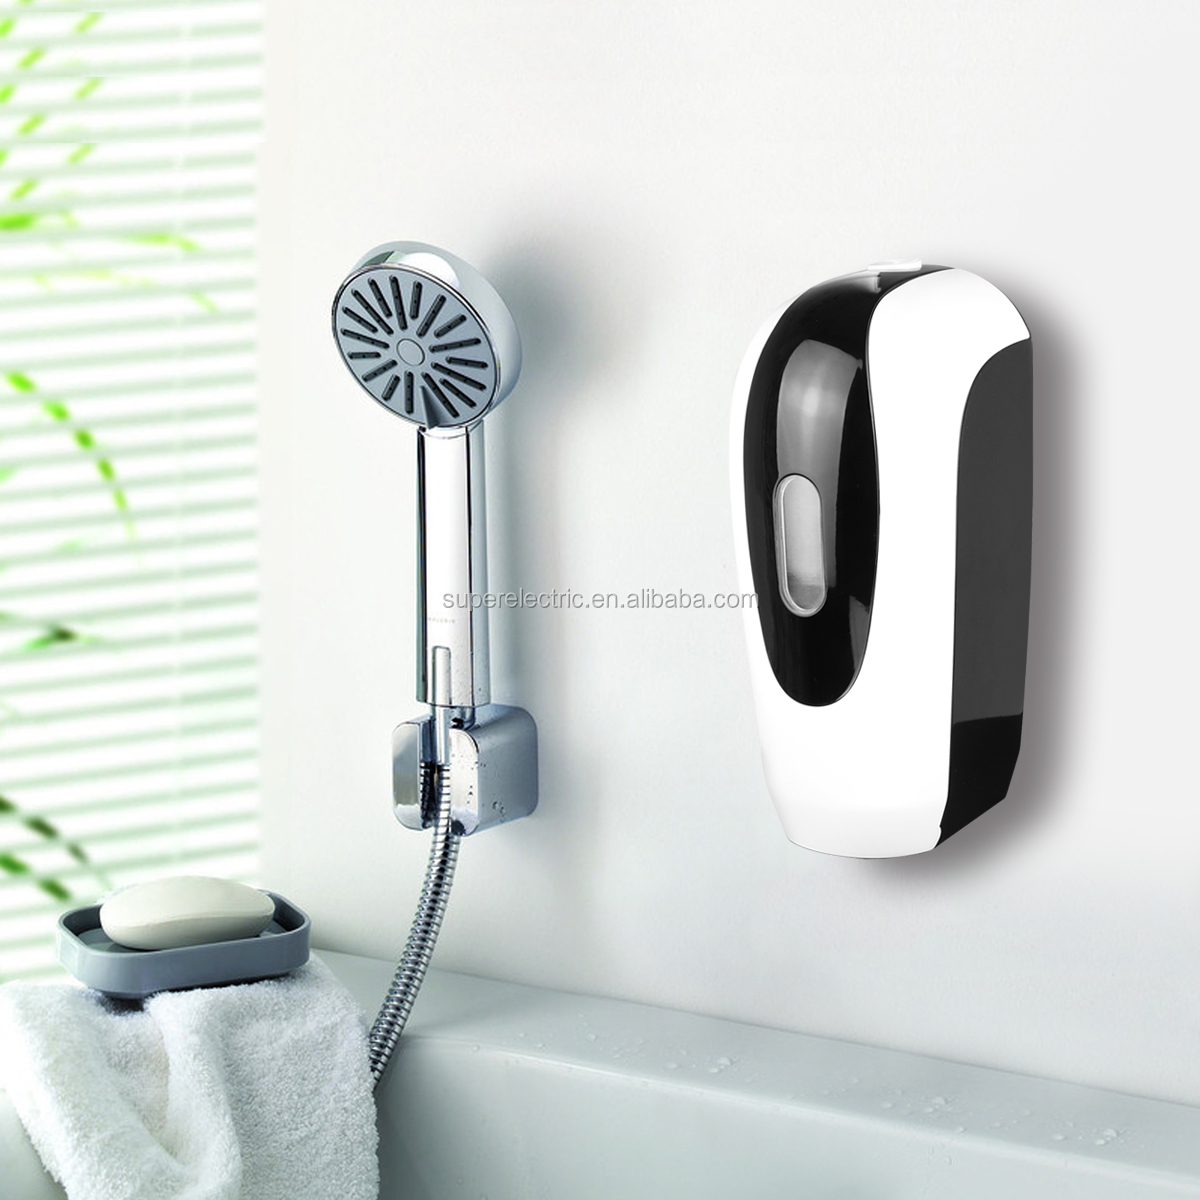 2020 New Tech wall mounted Automatic Soap Dispenser Touchless Liquid Foaming Spray Infrared Sensor Soap Dispenser